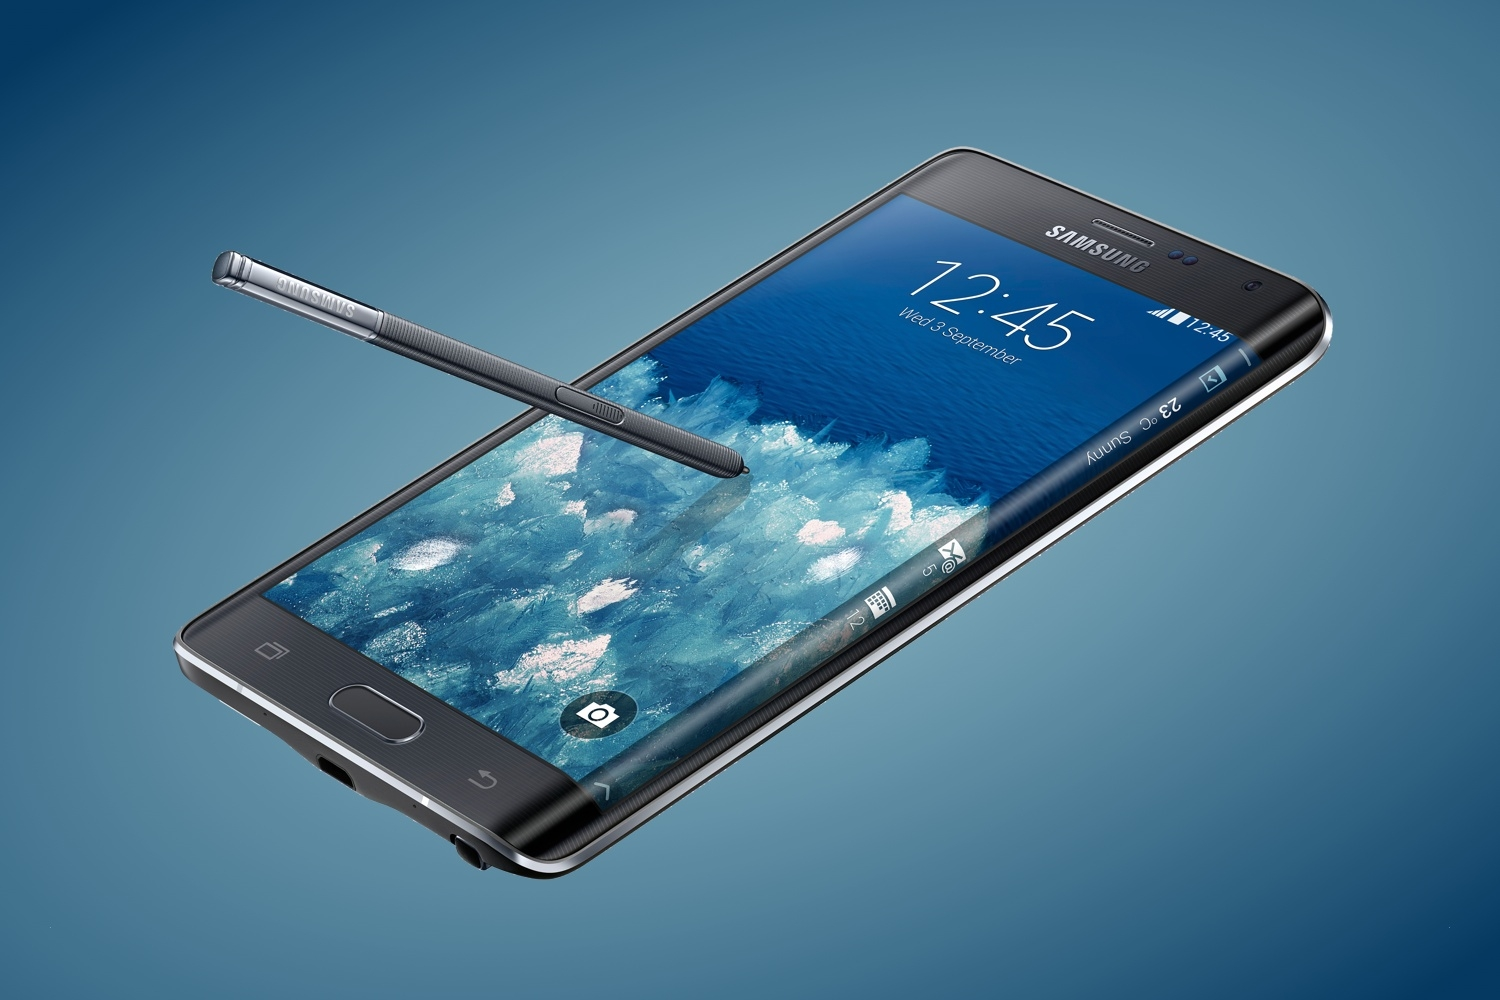 Samsung Gets Edgy: Introducing the Galaxy Note Edge